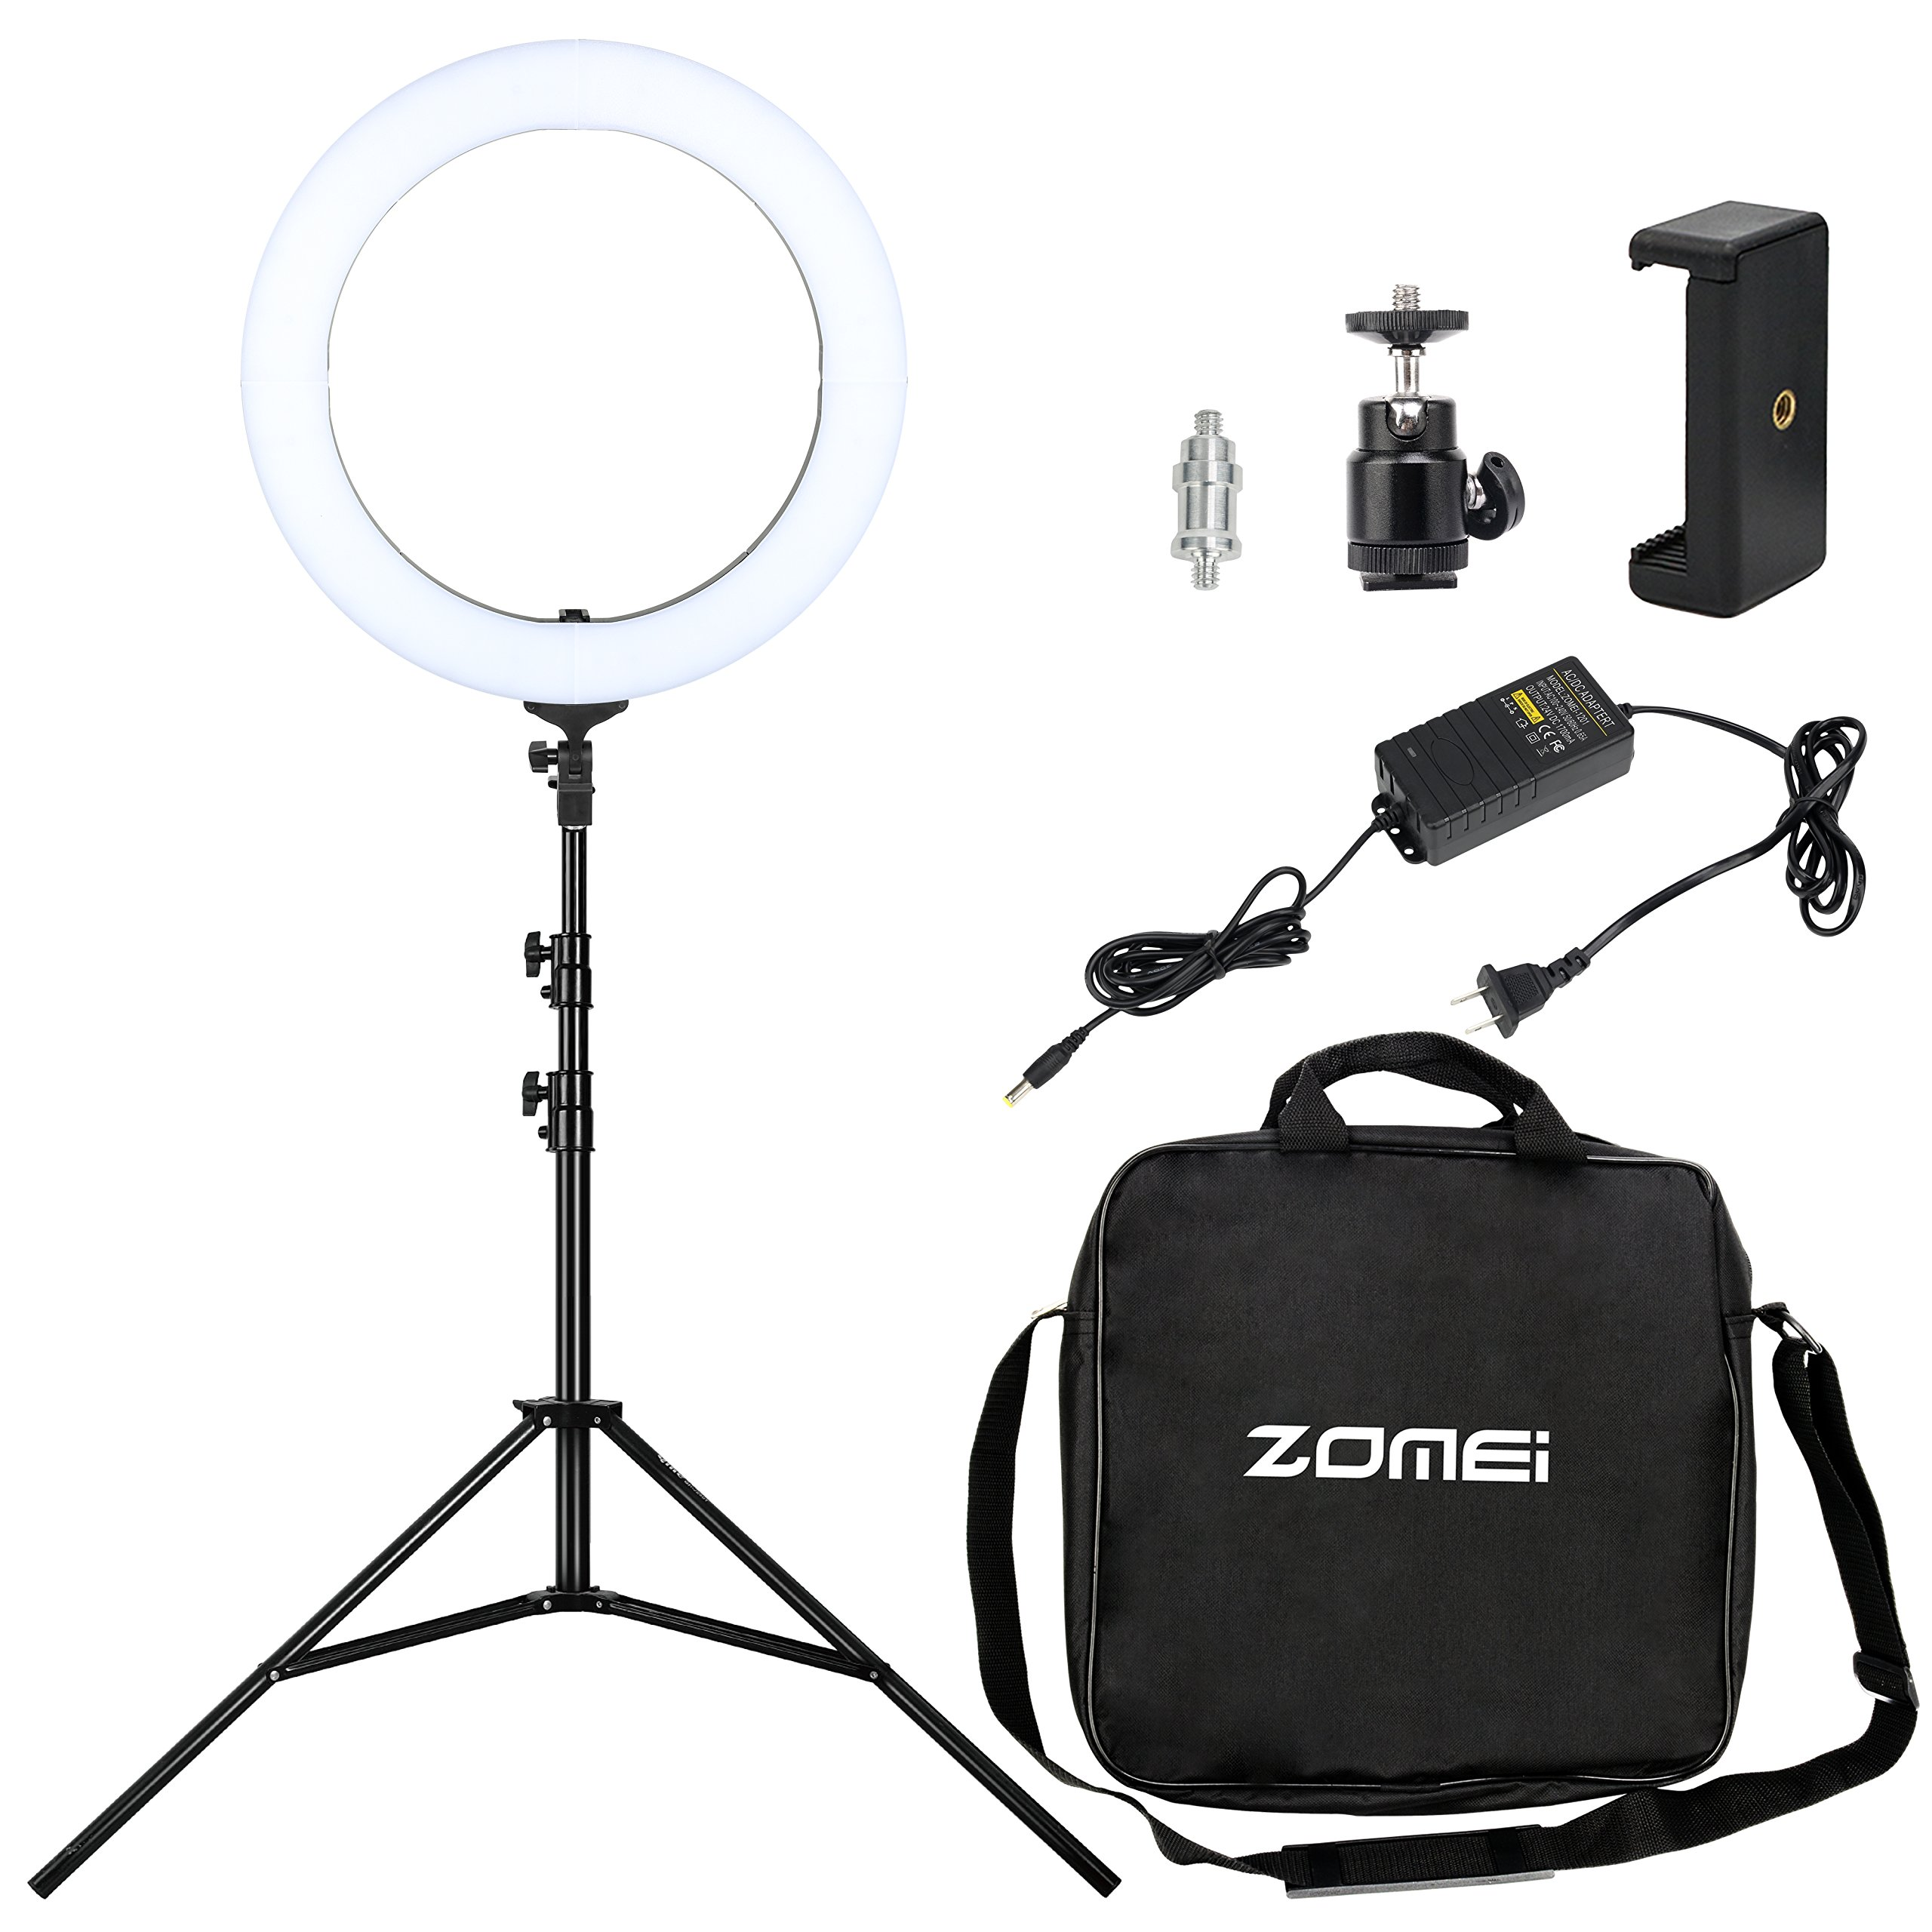 ZOMEI 18-inch LED Ring Light 58W 2700-5500K White Color and Orange Color Changing Directly Lighting Kit with Light Stand and Phone Holder for Makeup,Camera Smartphone Youtube Live Video Shooting by BONFOTO